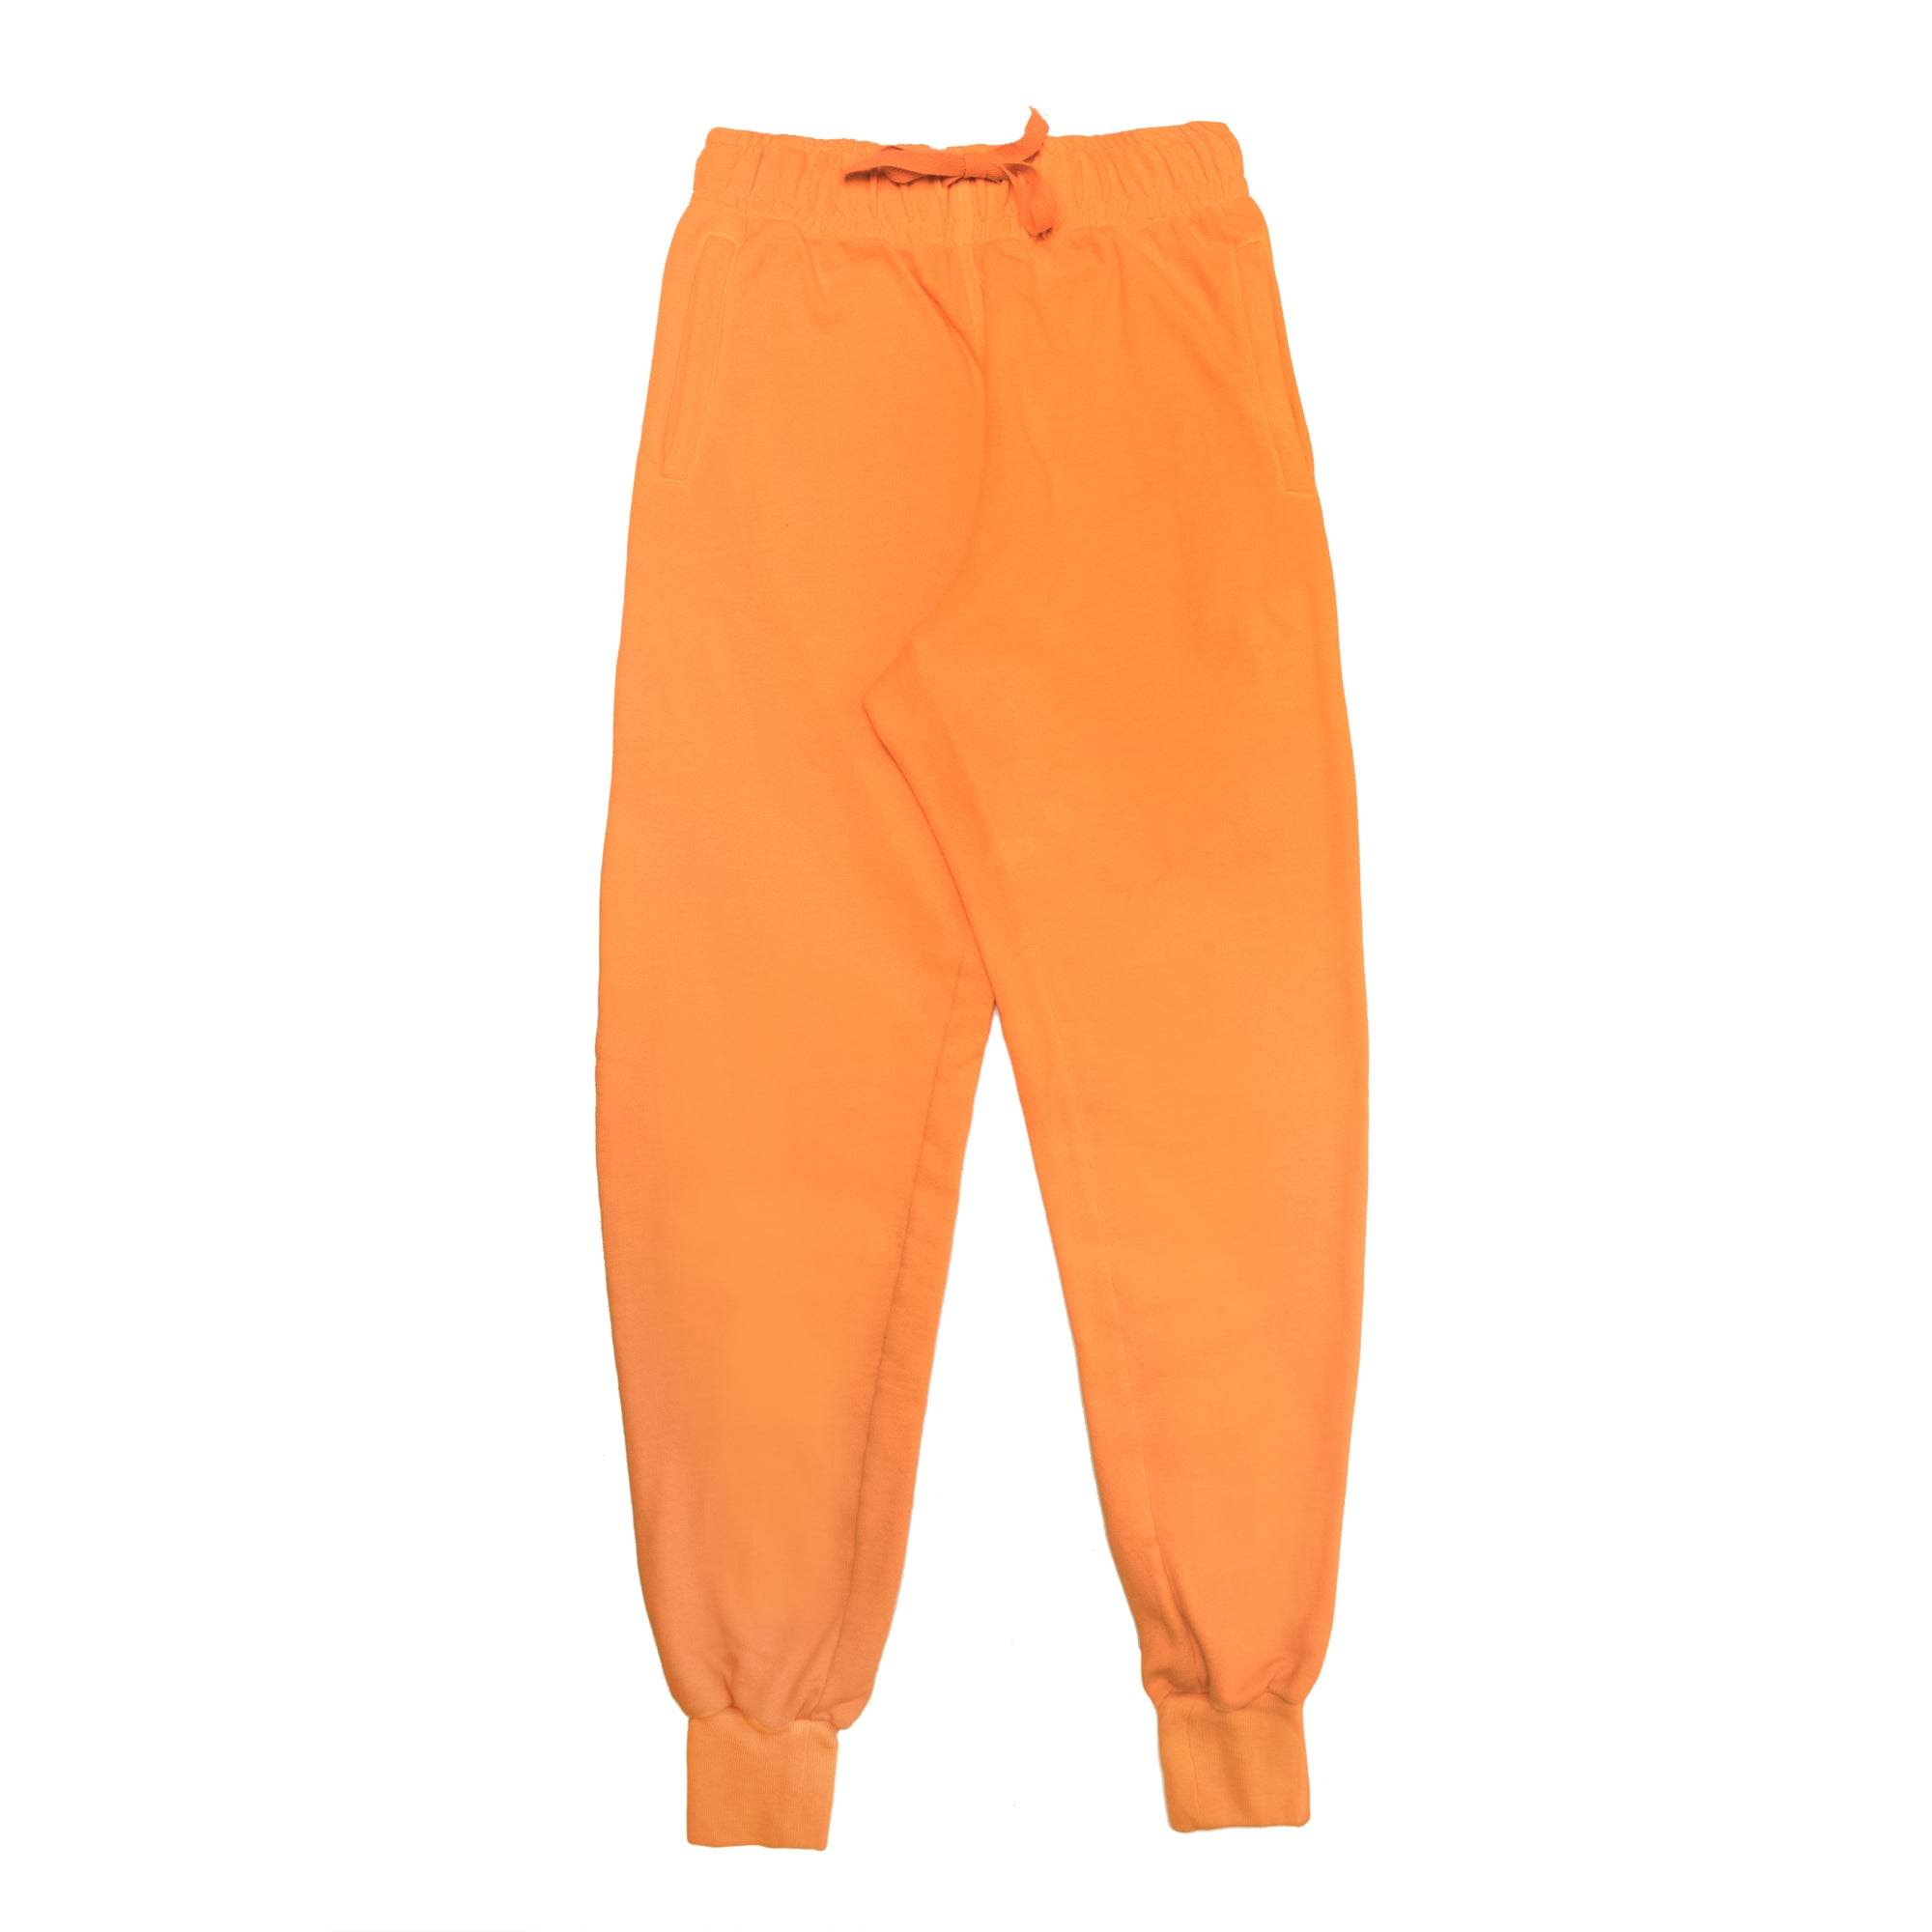 The Orange Sweatpant